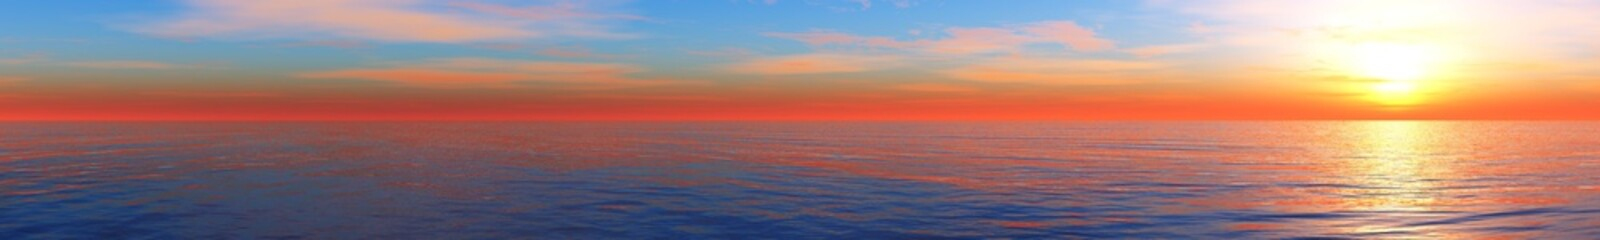 panoramic ocean sunset